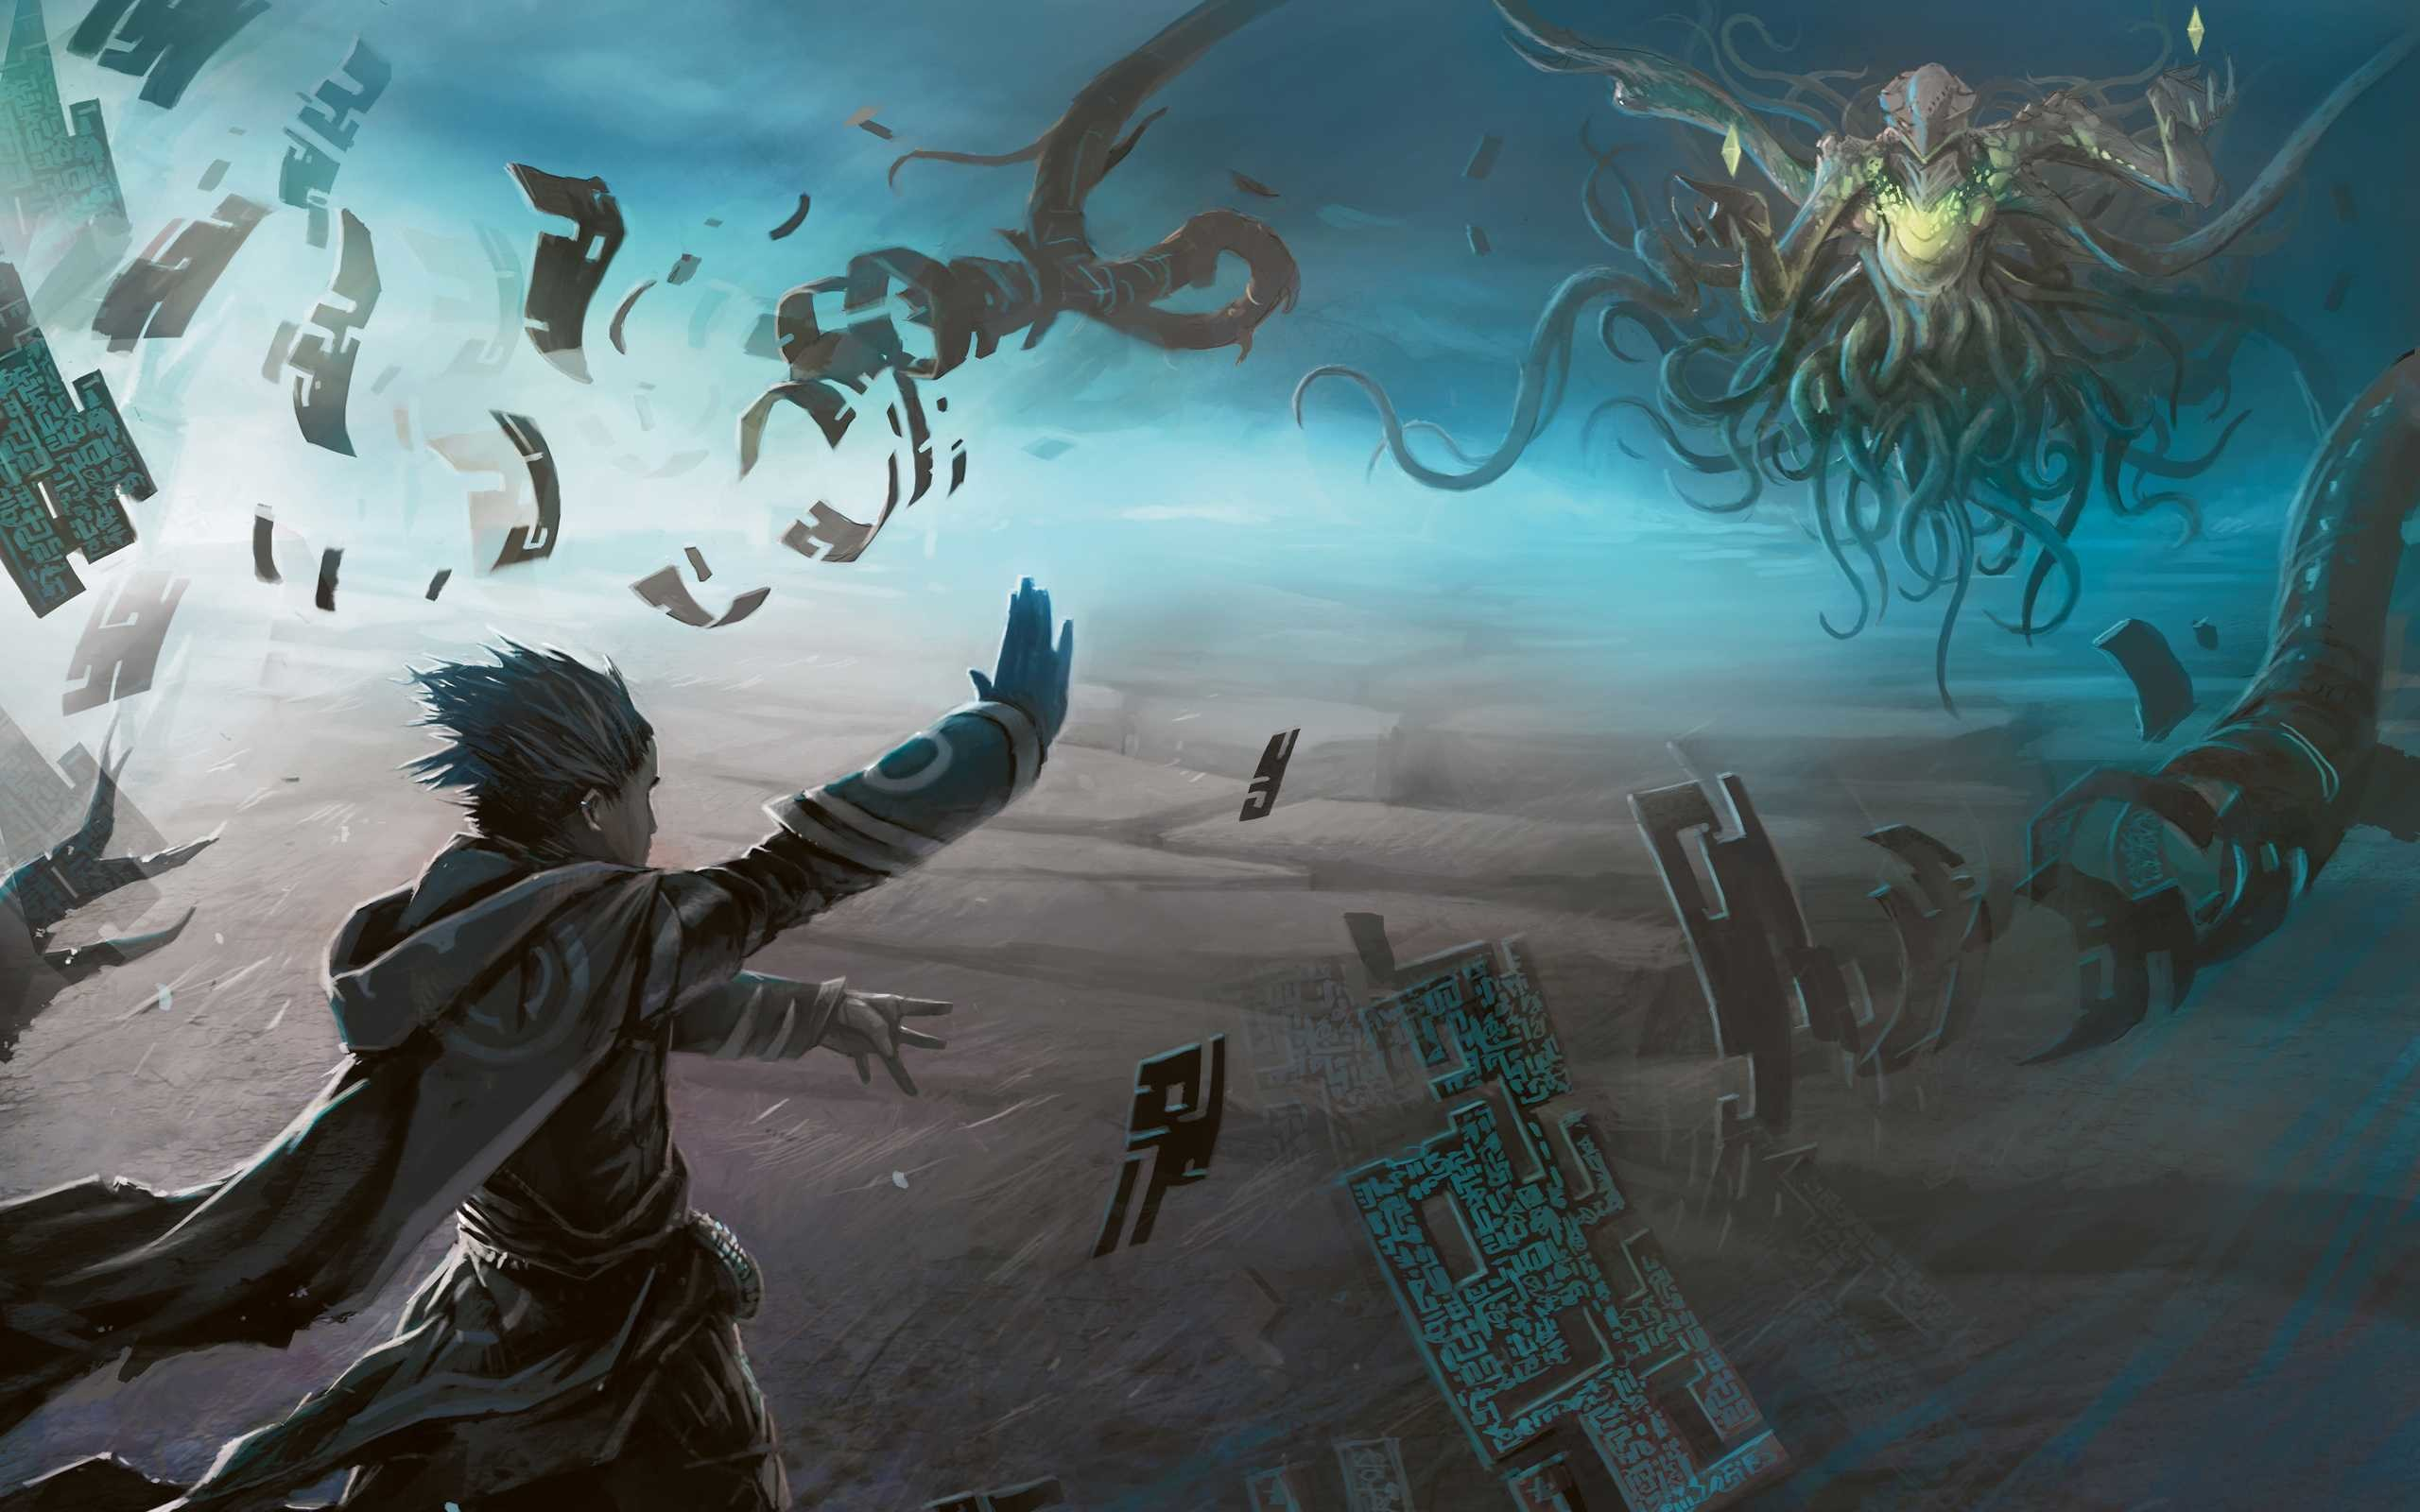 Res: 2560x1600, Magic The Gathering Widescreen Wallpaper For Mobile Phones Hd Images